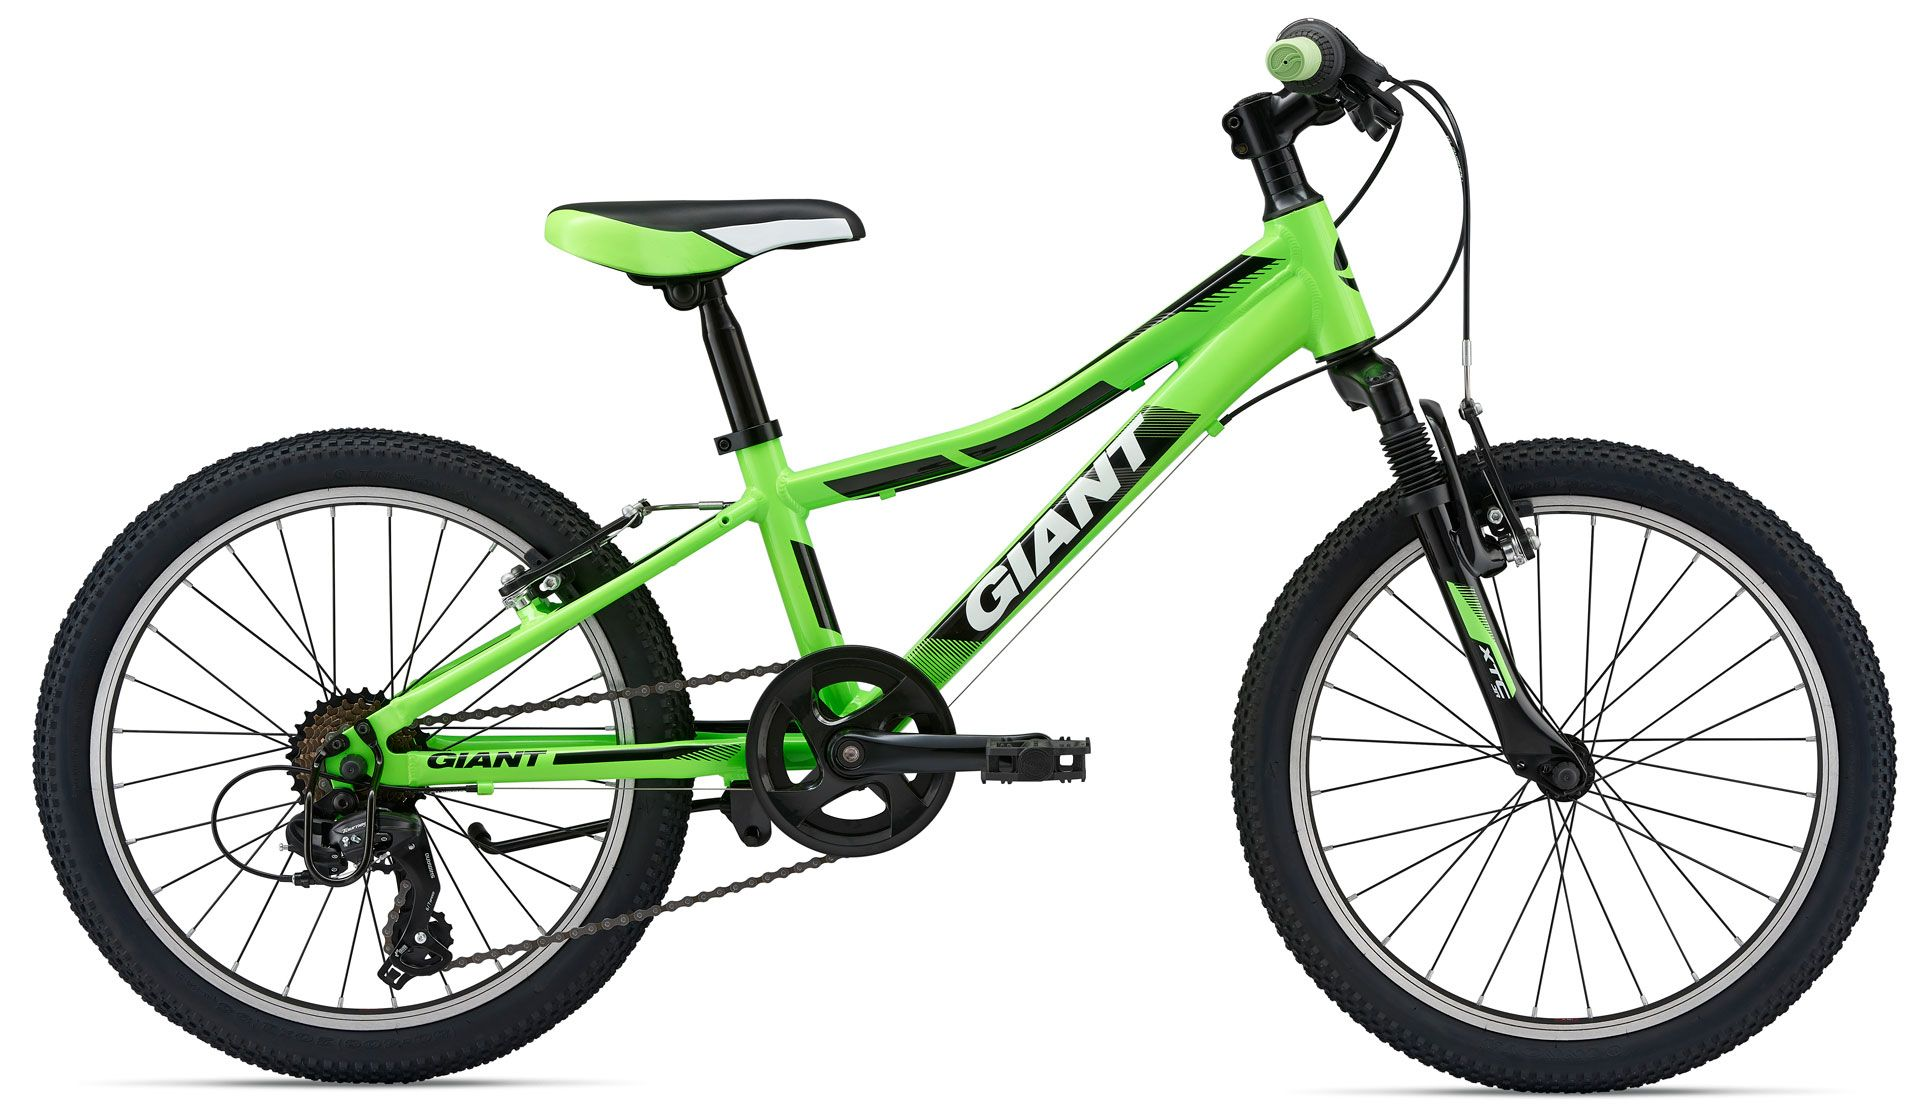 Велосипед Giant XtC Jr 20 2018 велосипед giant xtc composite 1 2013